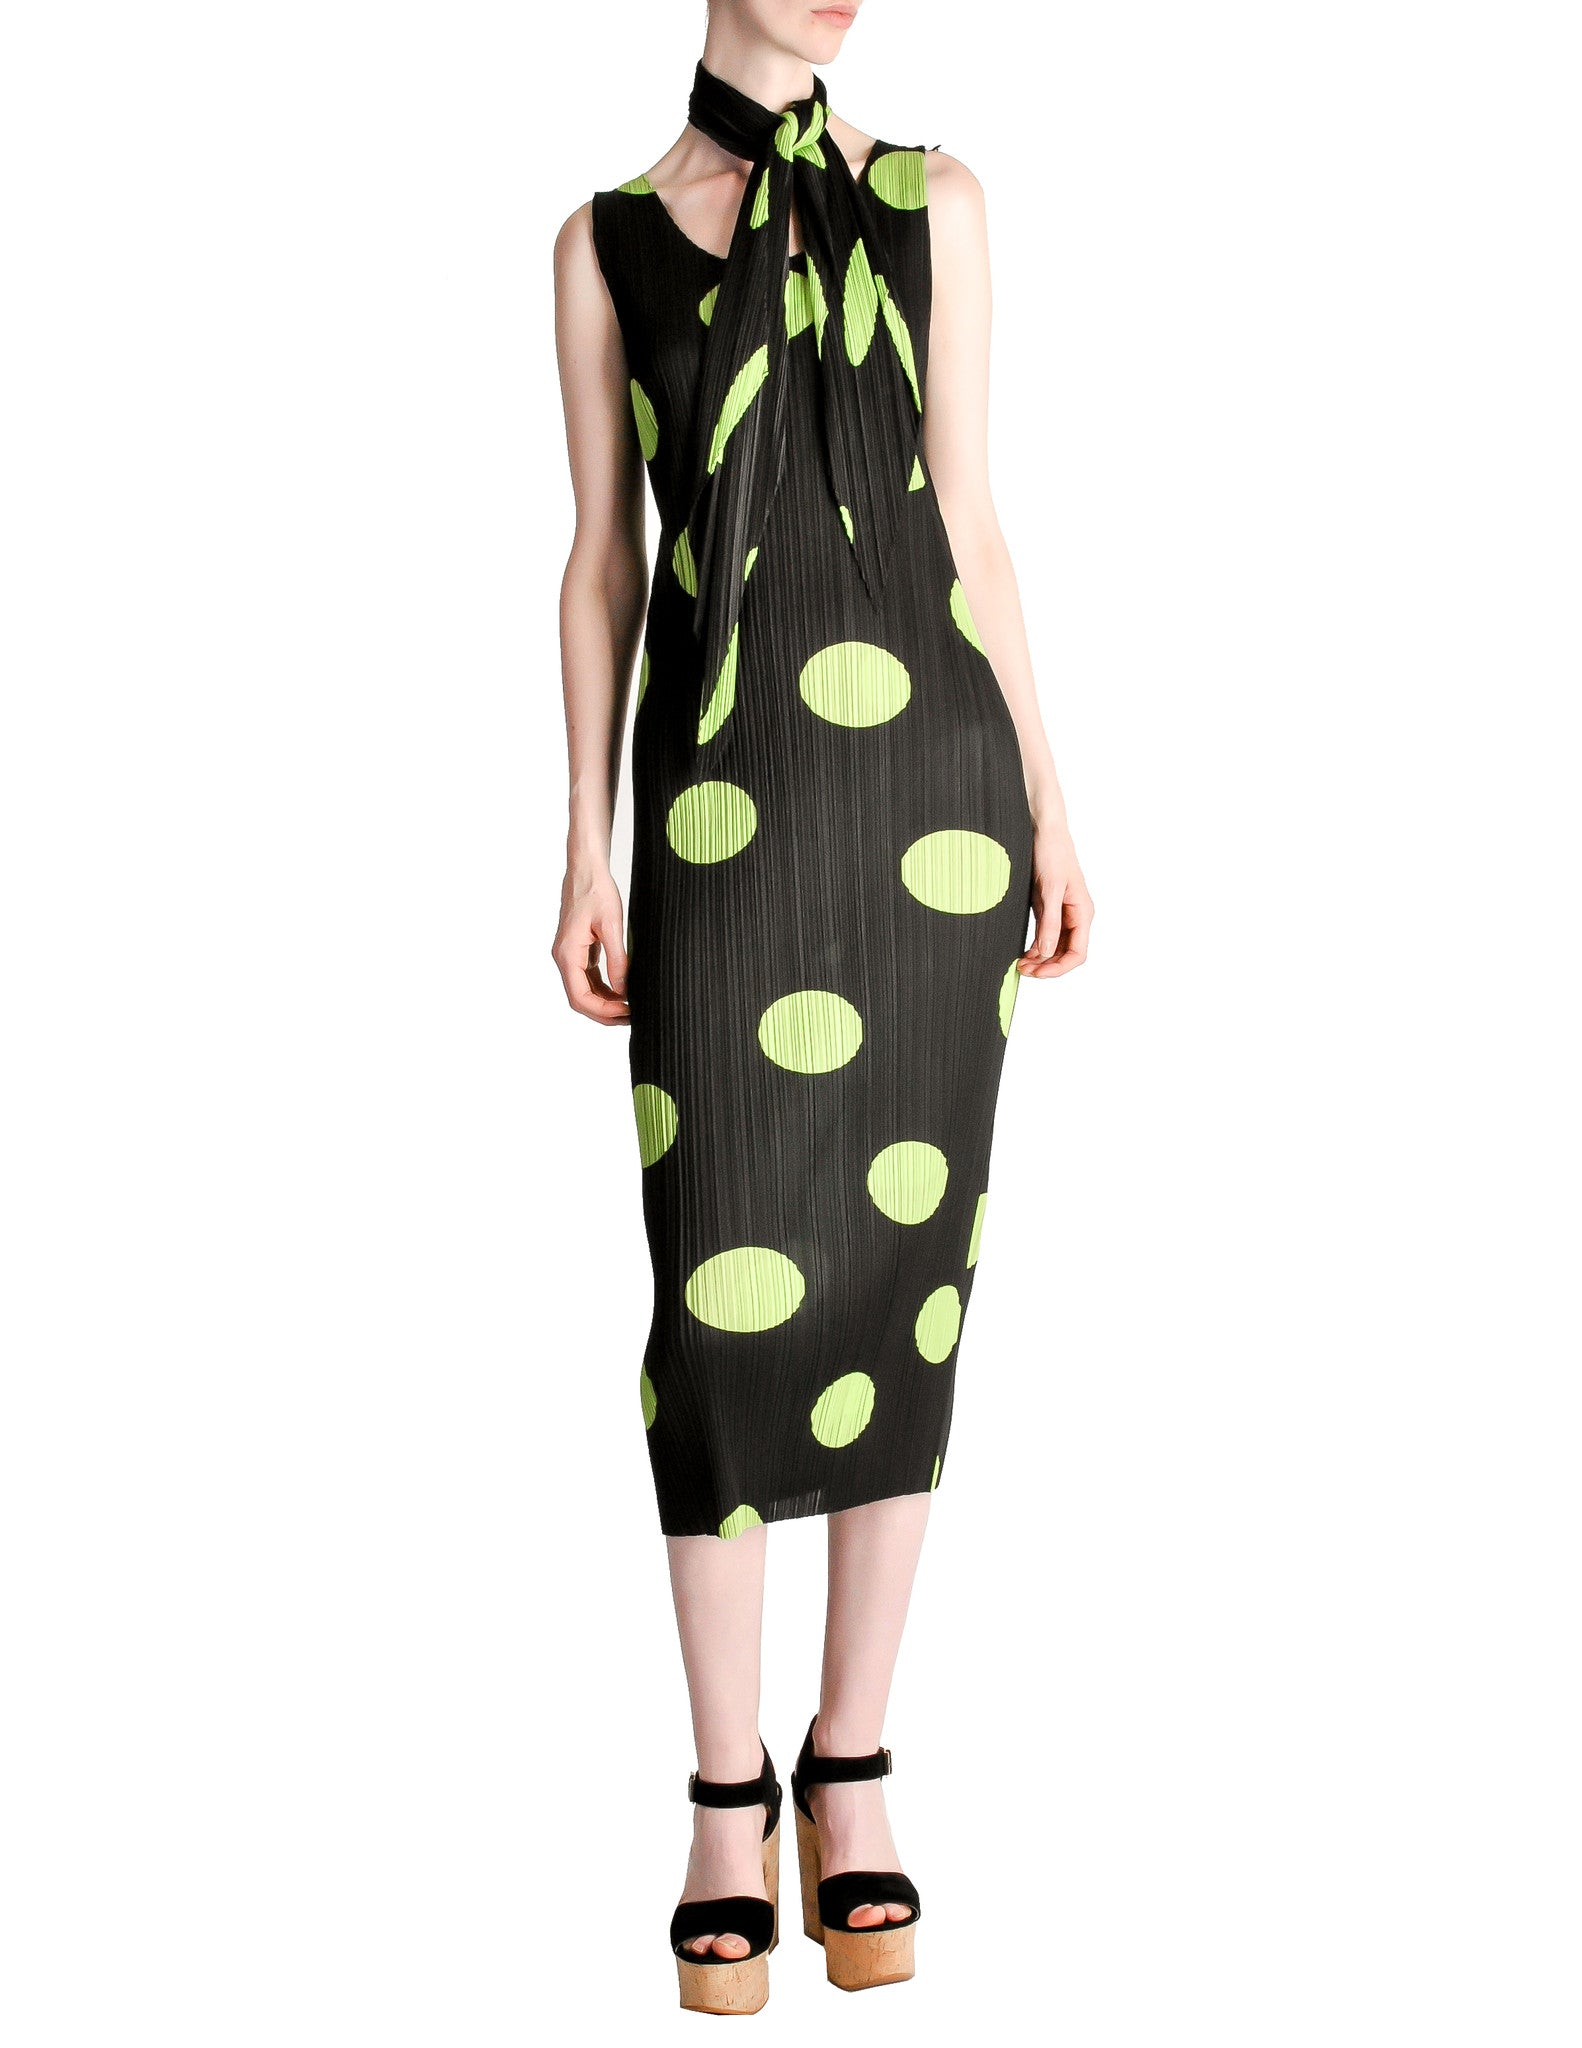 Issey Miyake Pleats Please Vintage Black & Green Polka Dot Dress - Amarcord Vintage Fashion  - 1